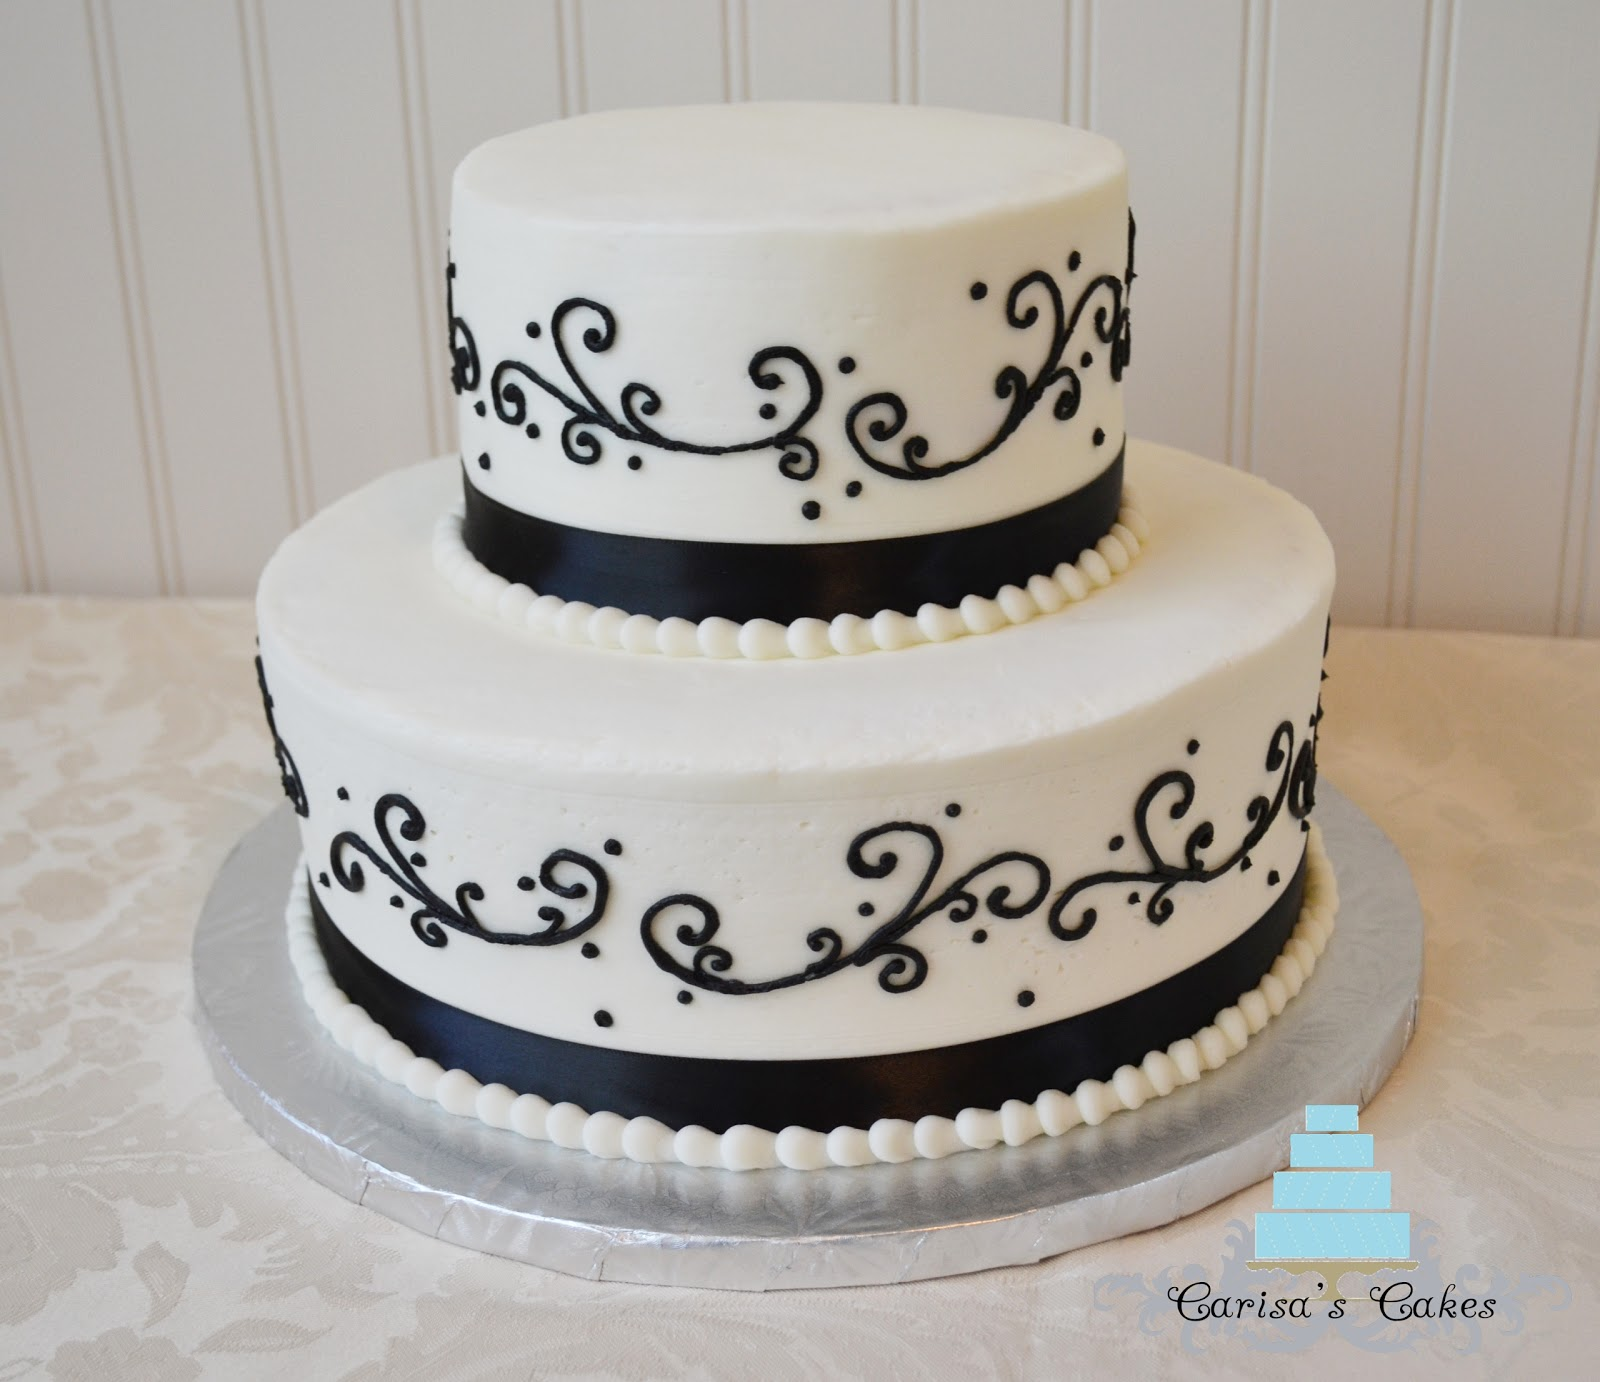 carisa 39 s cakes black and white wedding cake. Black Bedroom Furniture Sets. Home Design Ideas